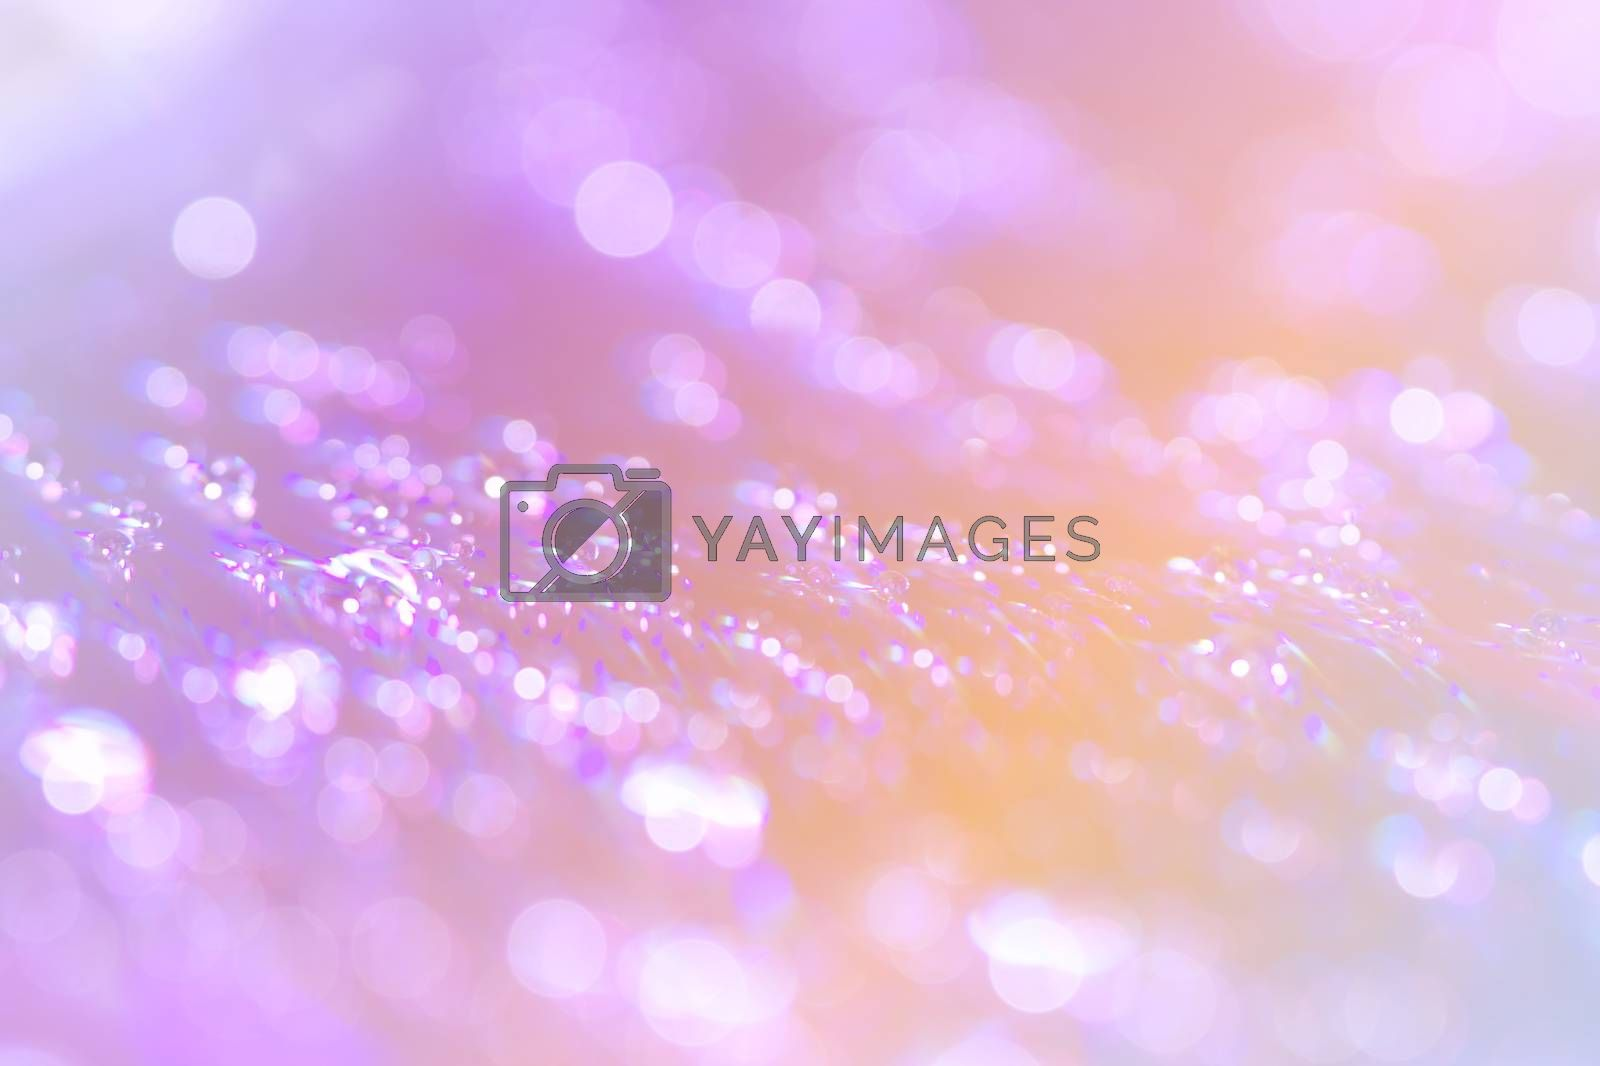 Abstract water drop bokeh on platter colorful fresh beautiful use as celebration festival concept background image.